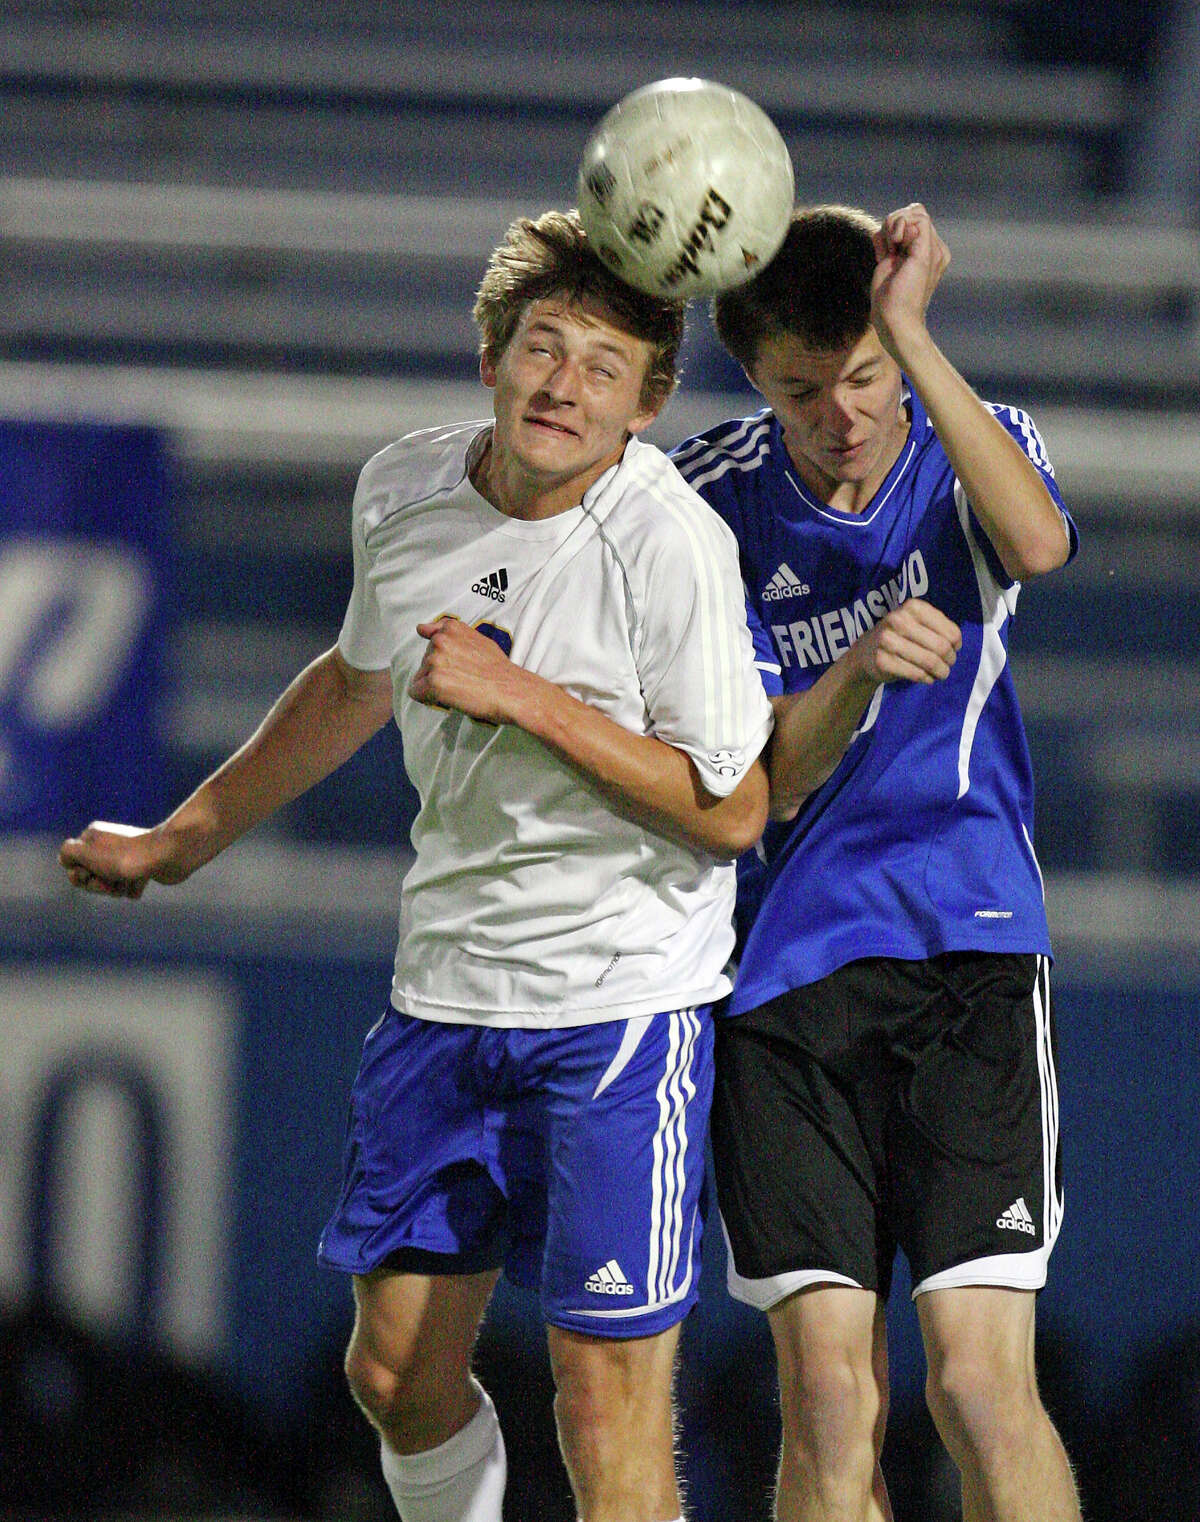 Alamo Heights' Matthew Struble (left) contests a header with Friendswood's Matthew Johnson.